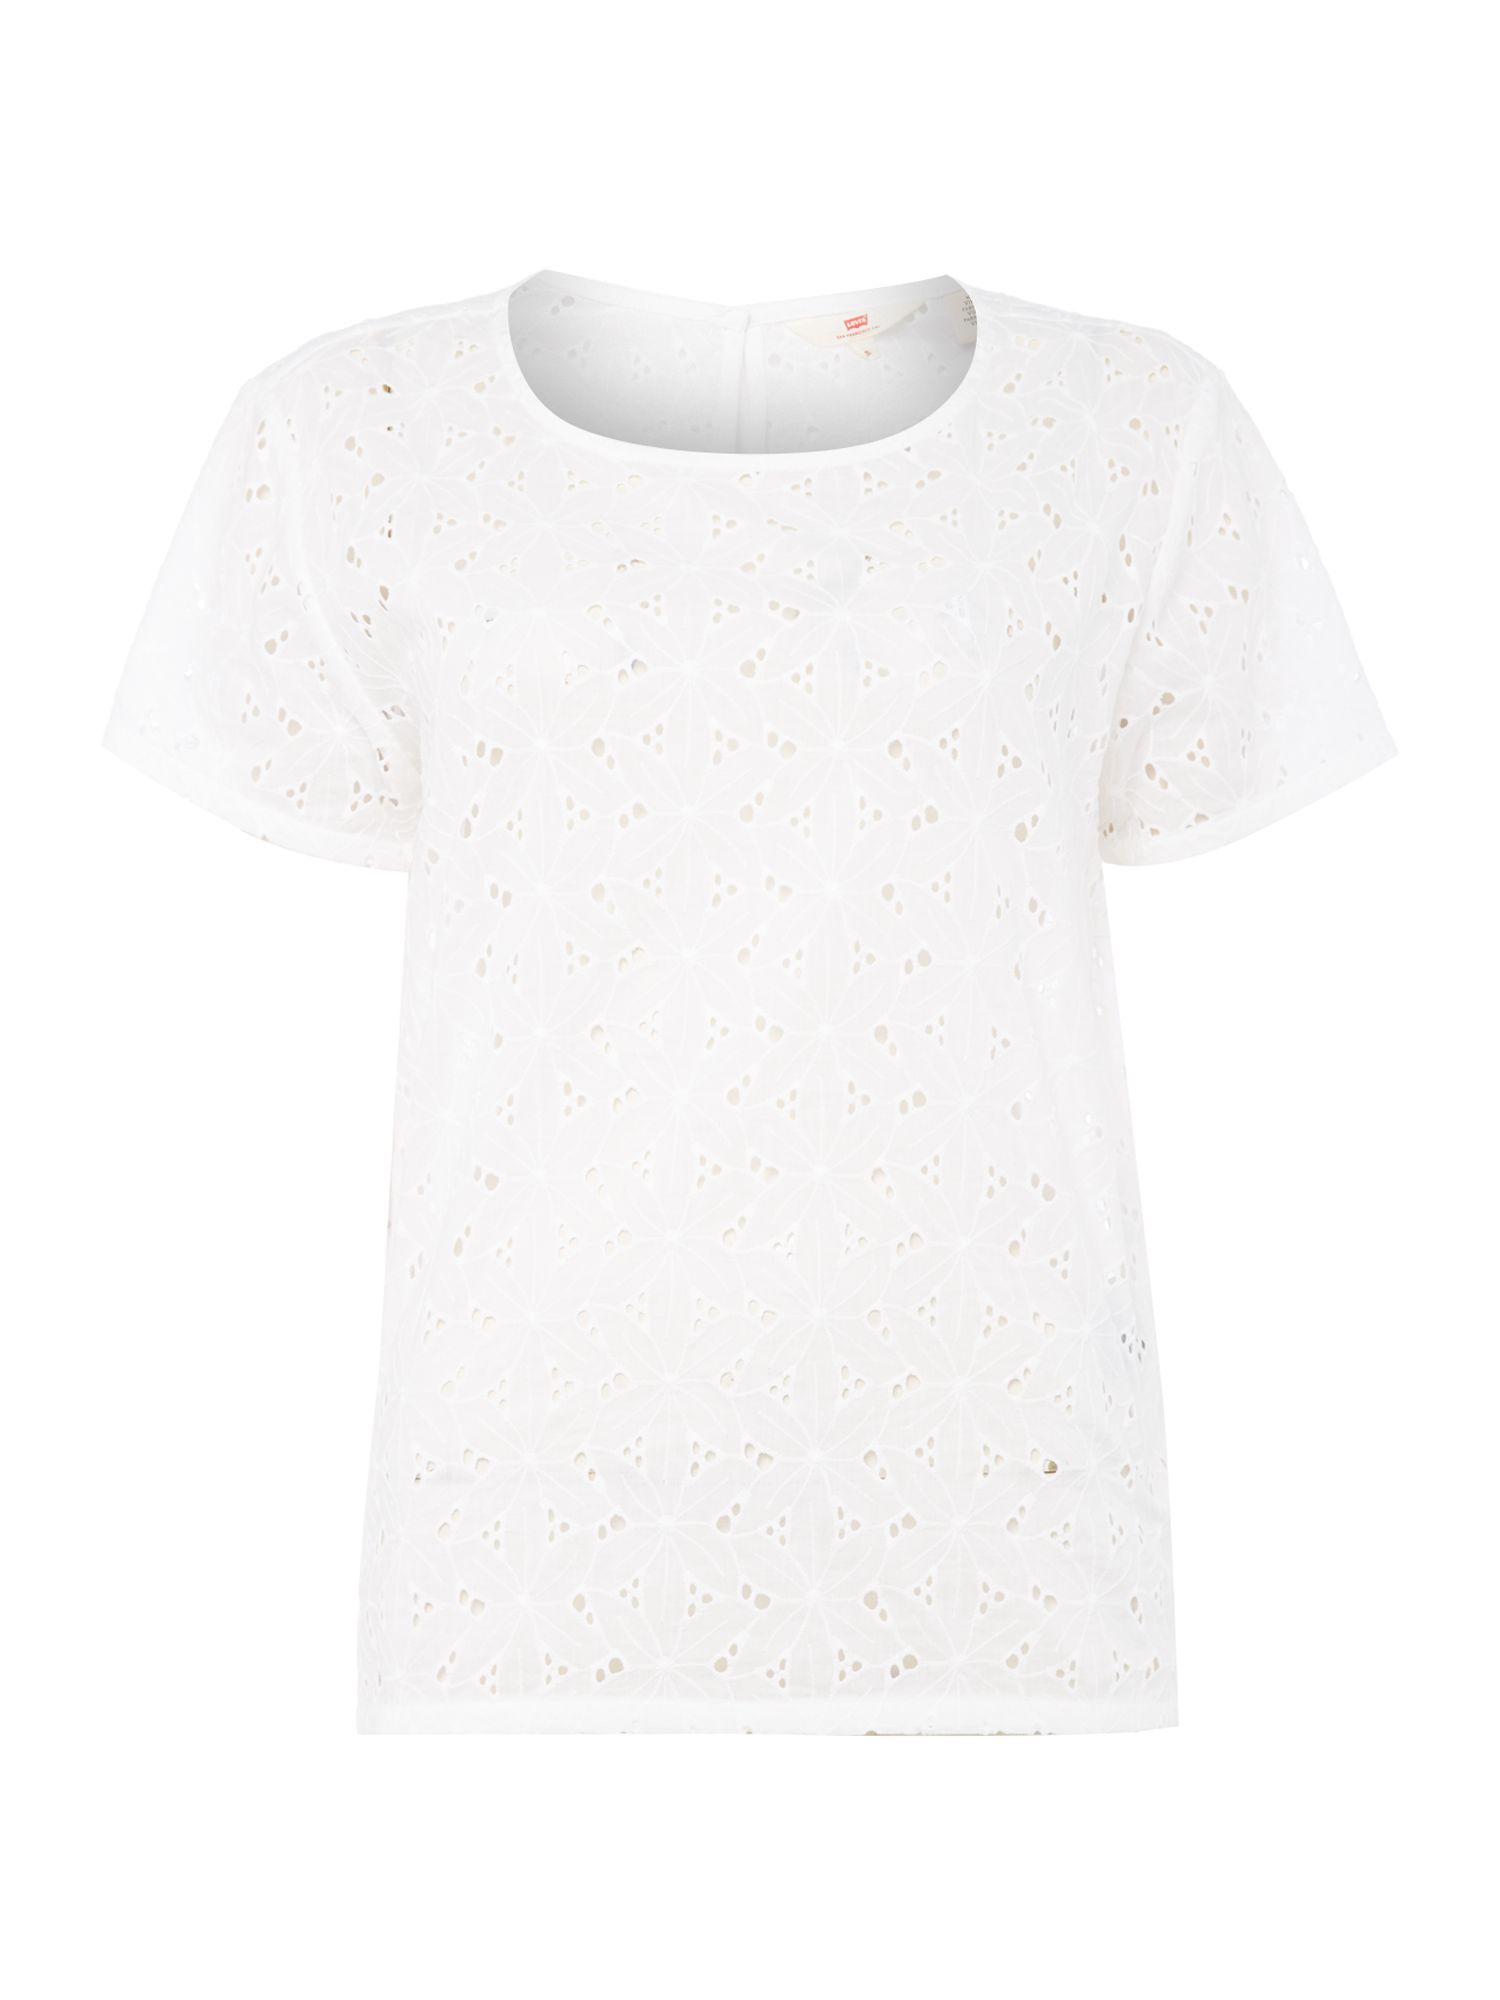 Levi's Joanna embroidered top in kissar white, White